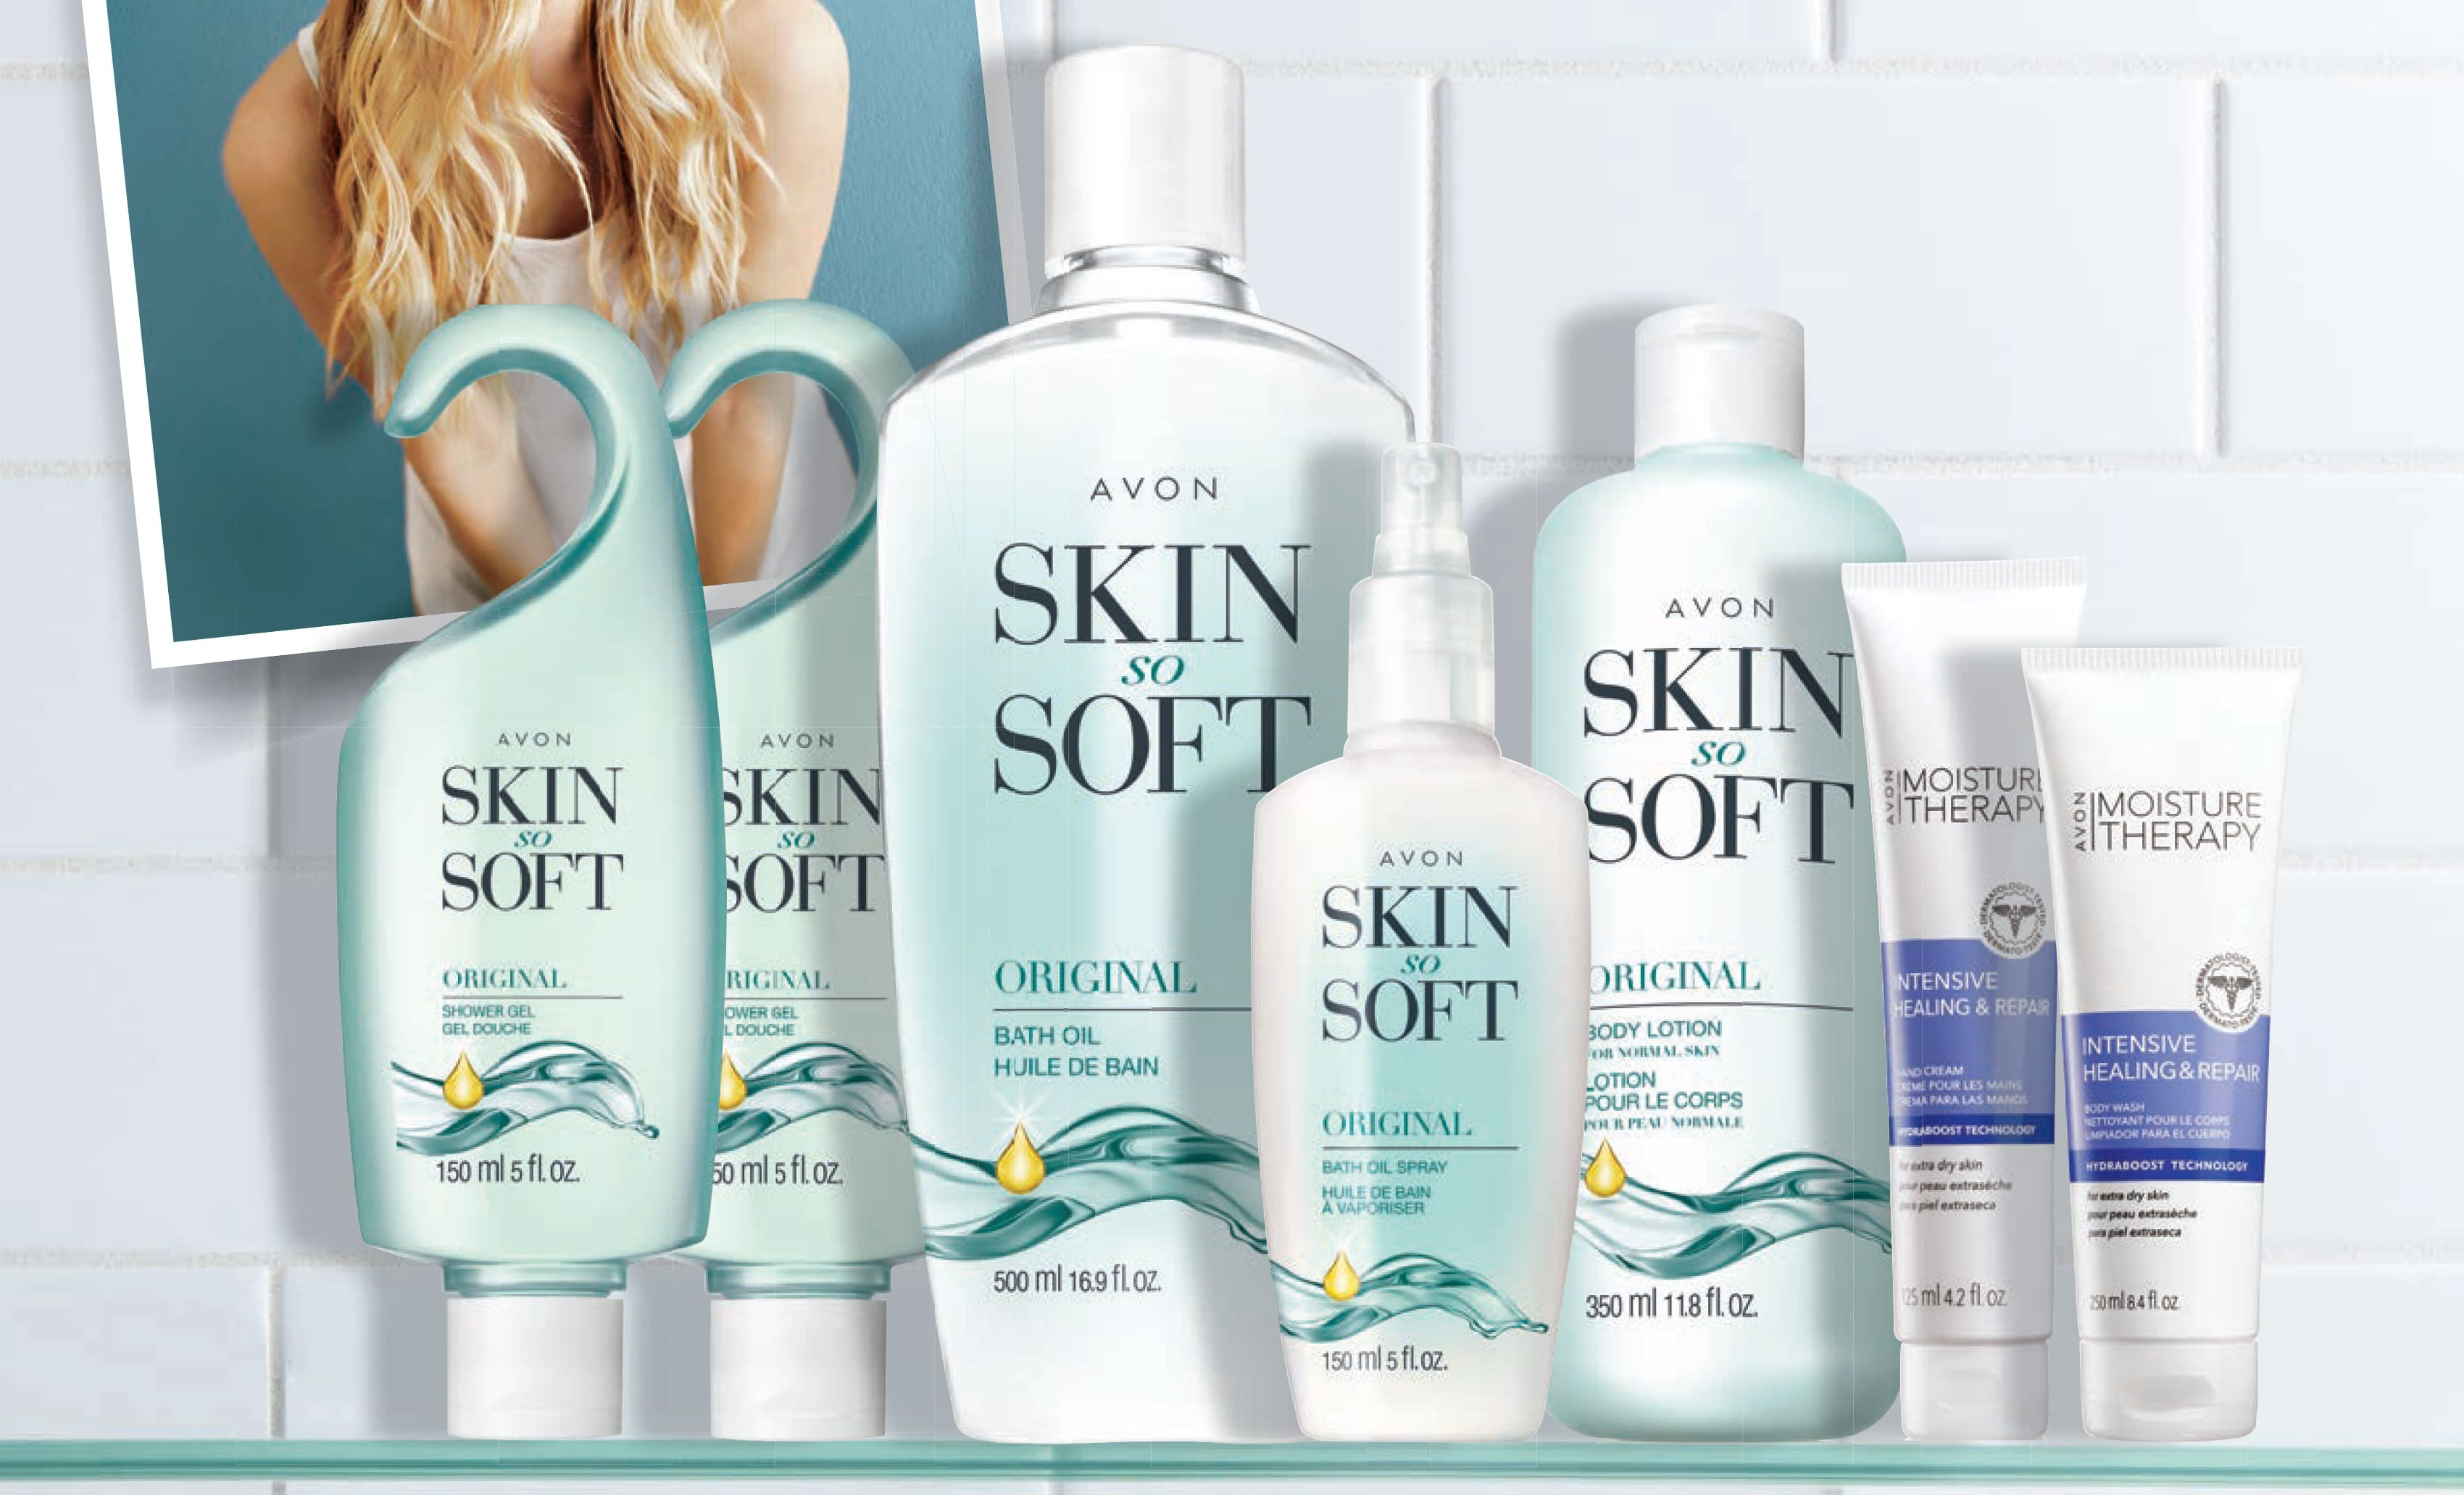 How To Use The Daily Care Collection To Get Your Avon